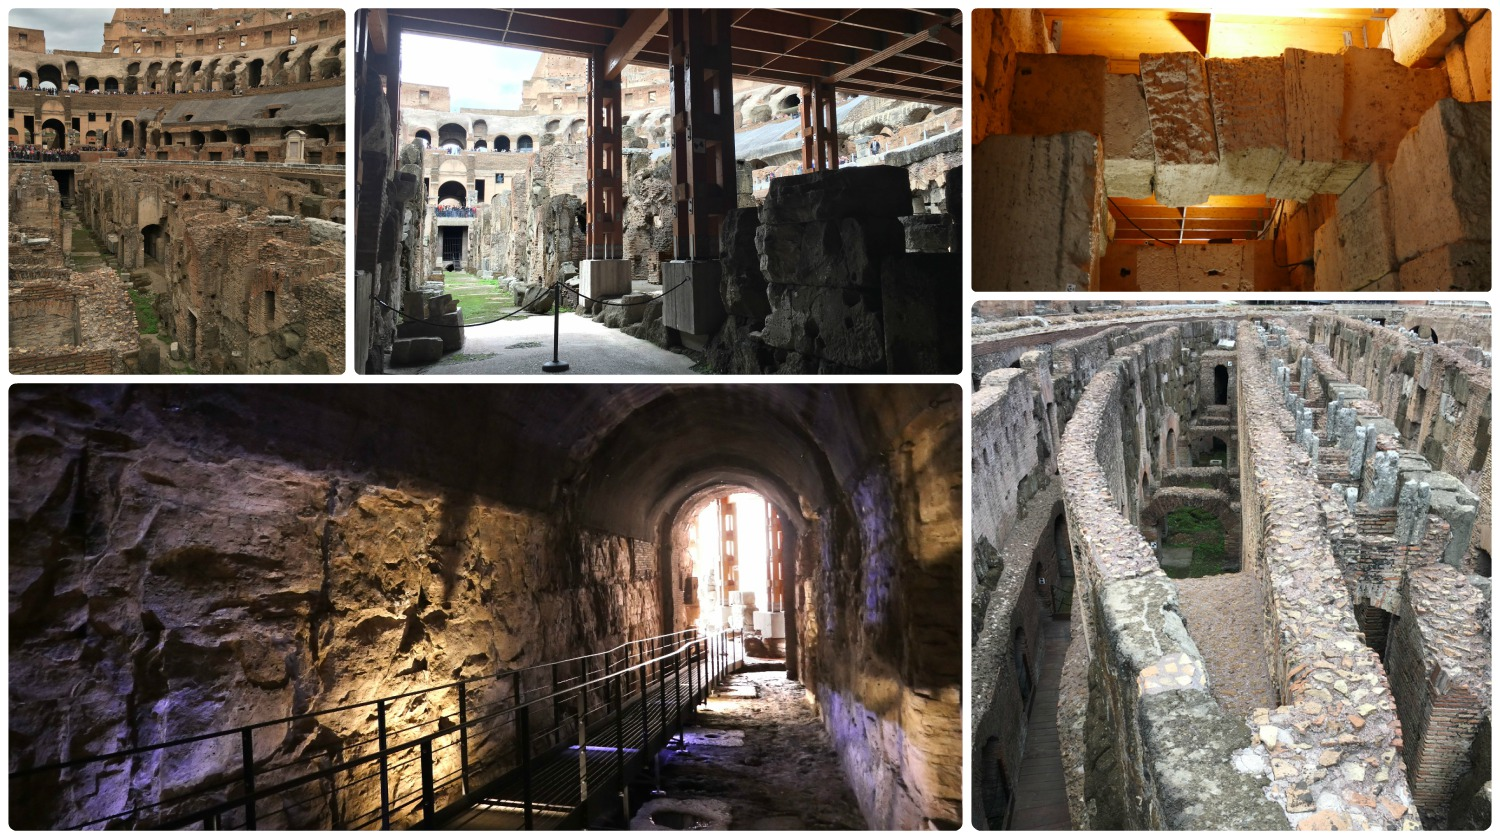 The underground area of the Roman Colosseum is only accessible by guided tour.